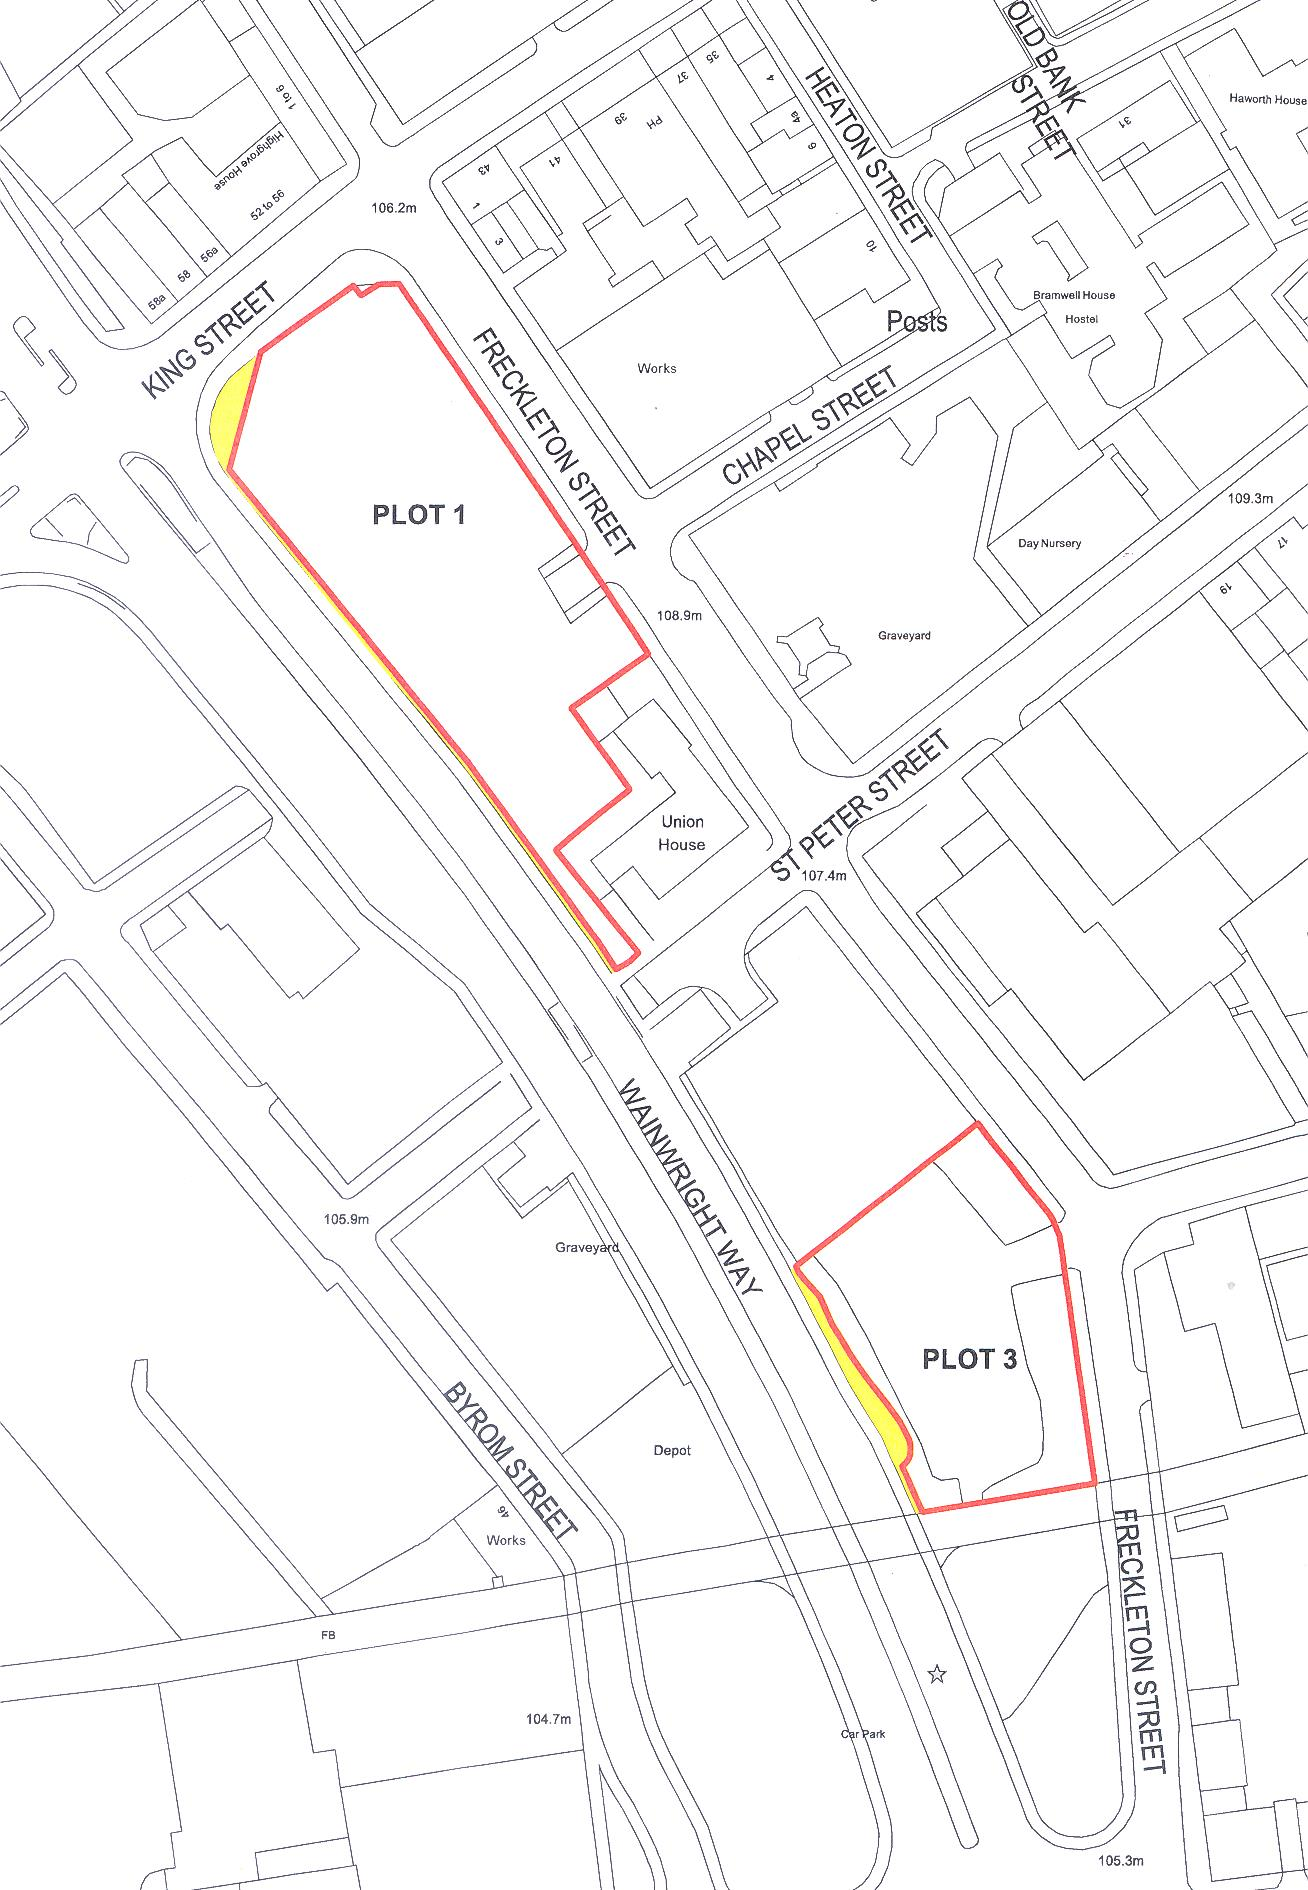 Prime Development Plots Come to the Market in Blackburn Town Centre